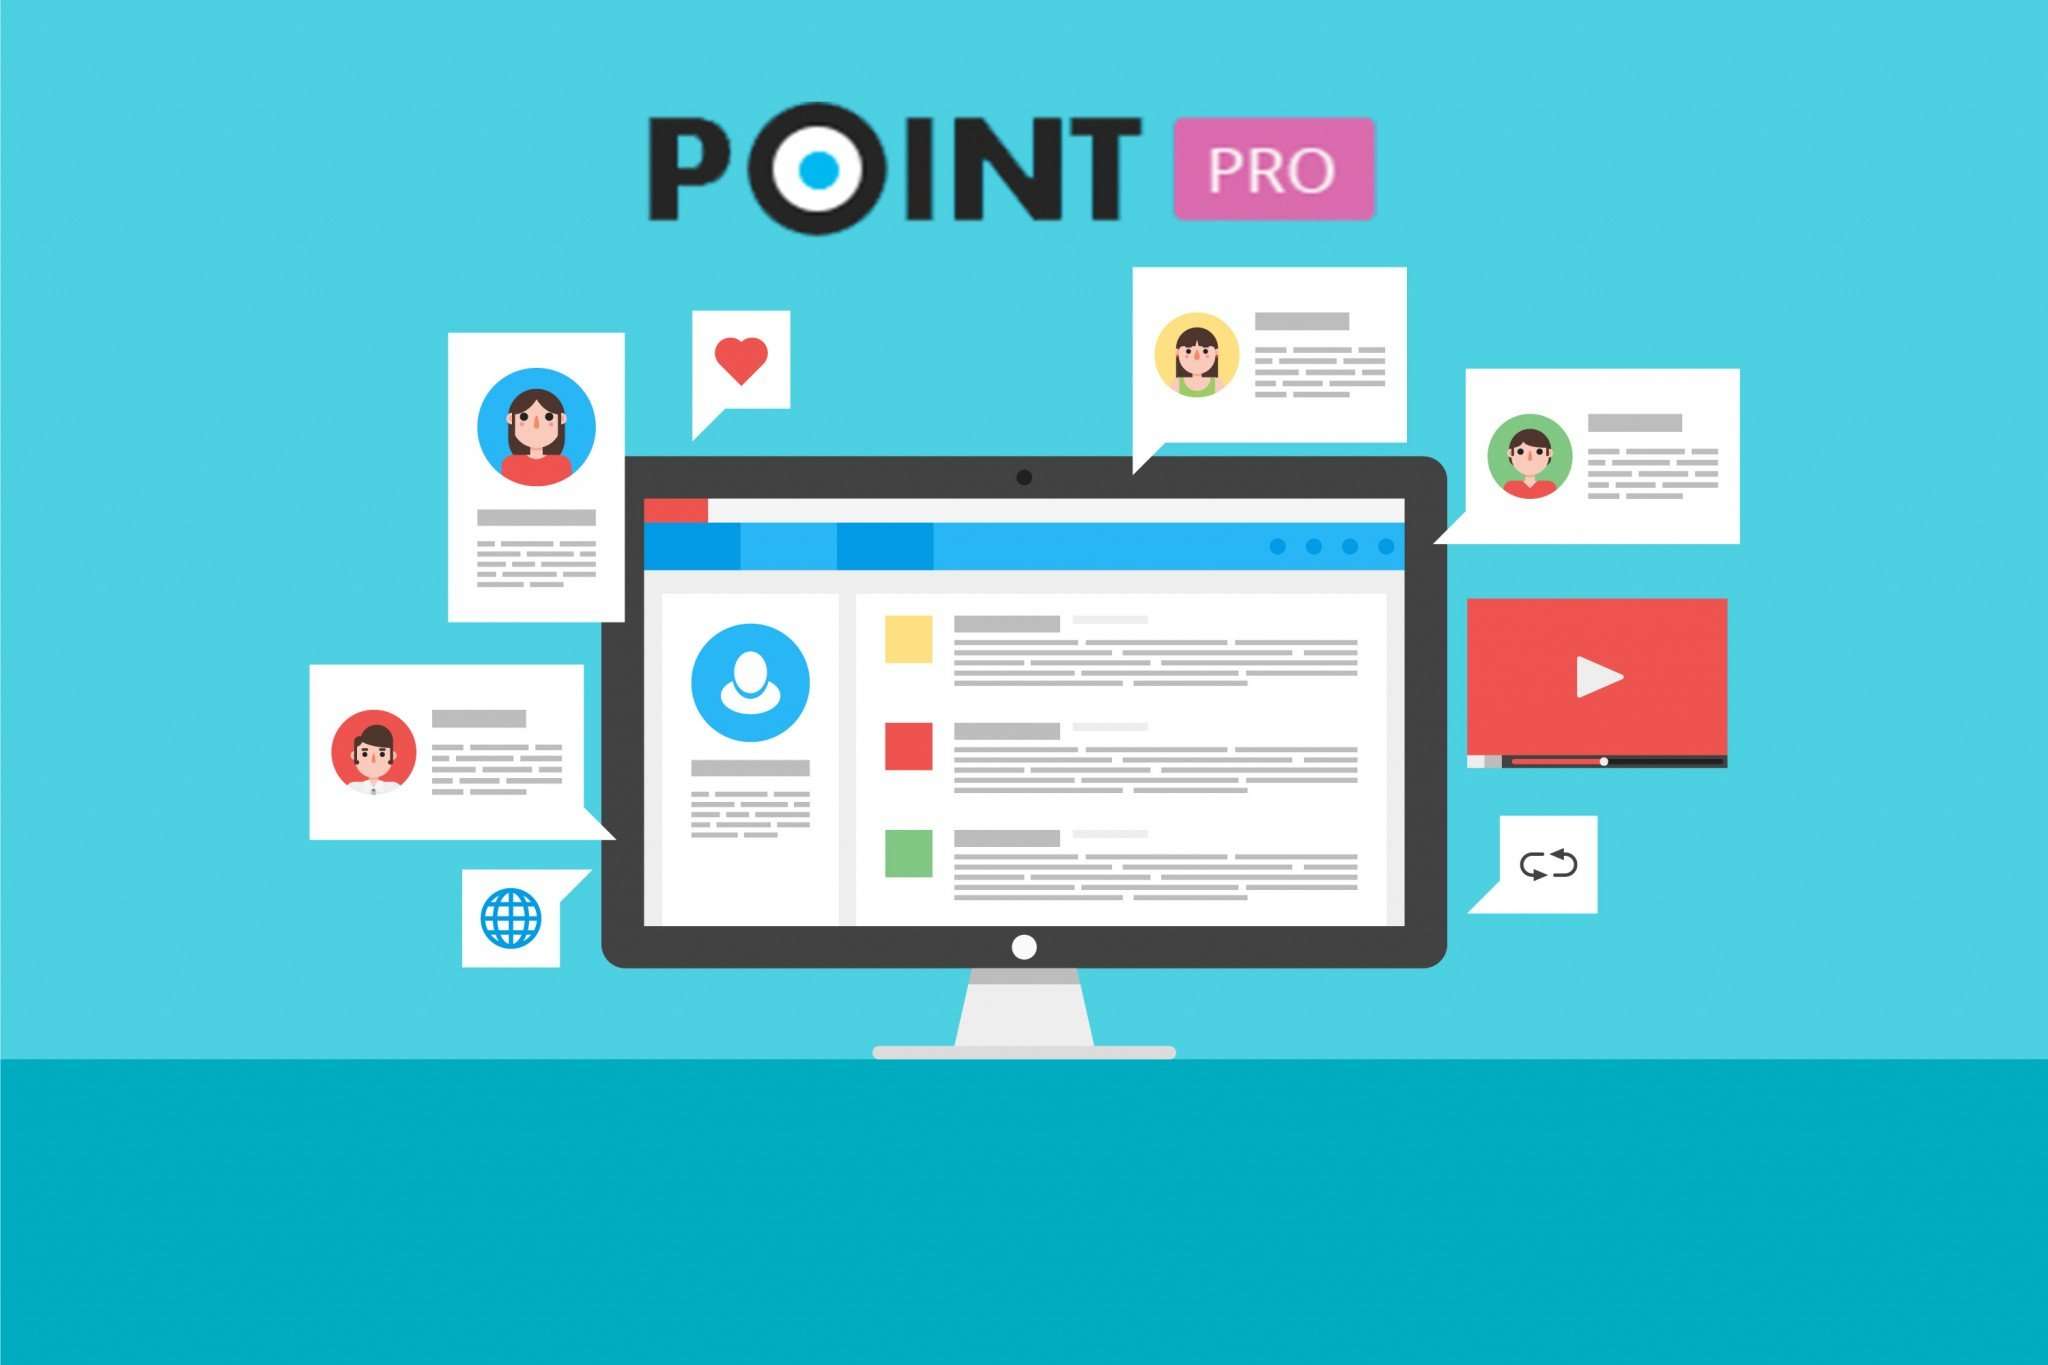 [Review] Tema WordPress PointPro Para Empreendedorismo Digital